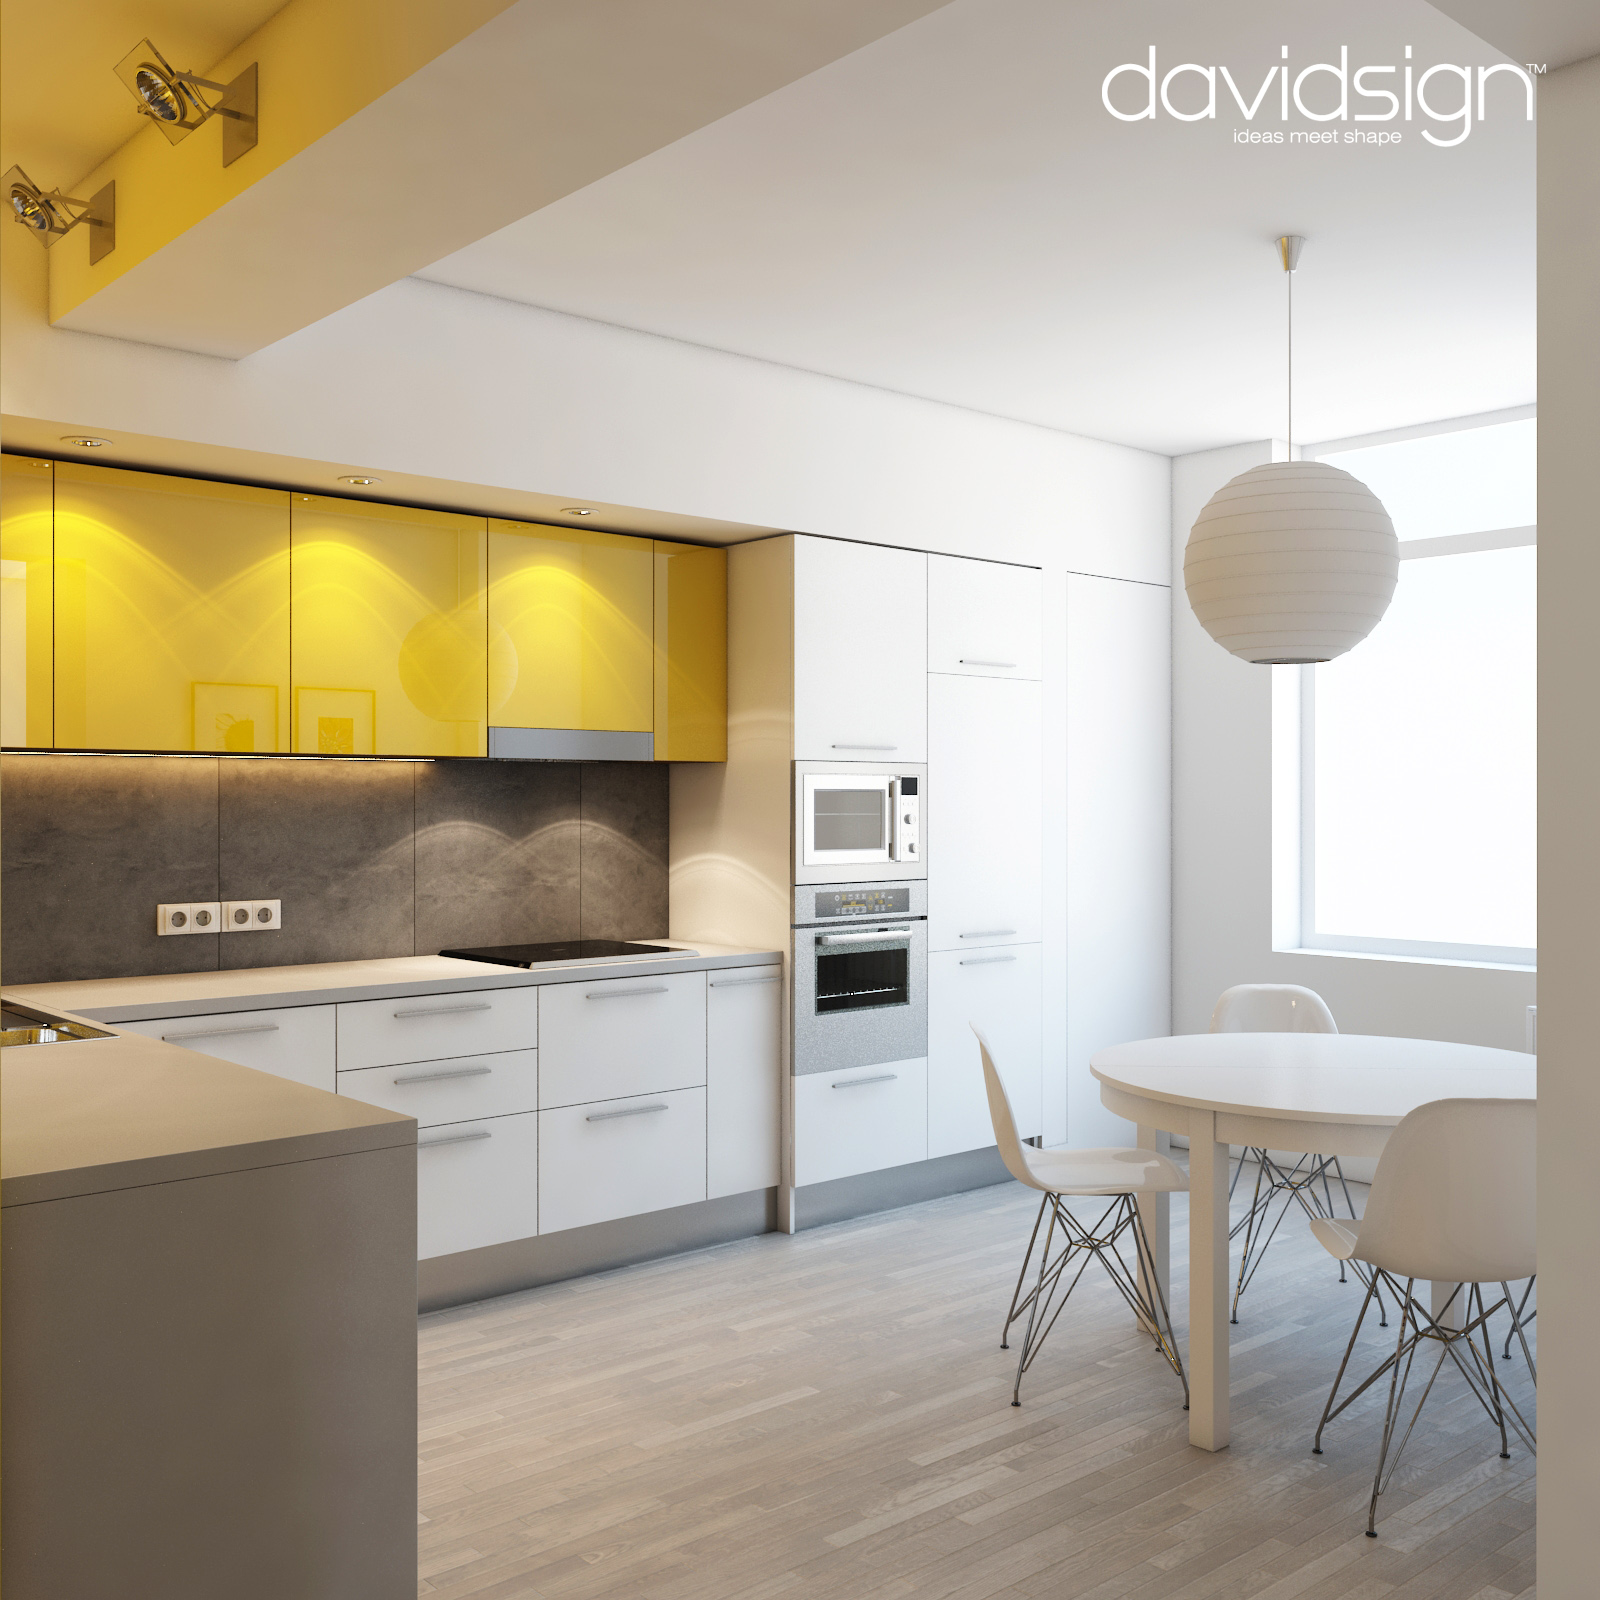 Design interior pentru apartament n chi in u davidsign blog - Interior design pic ...